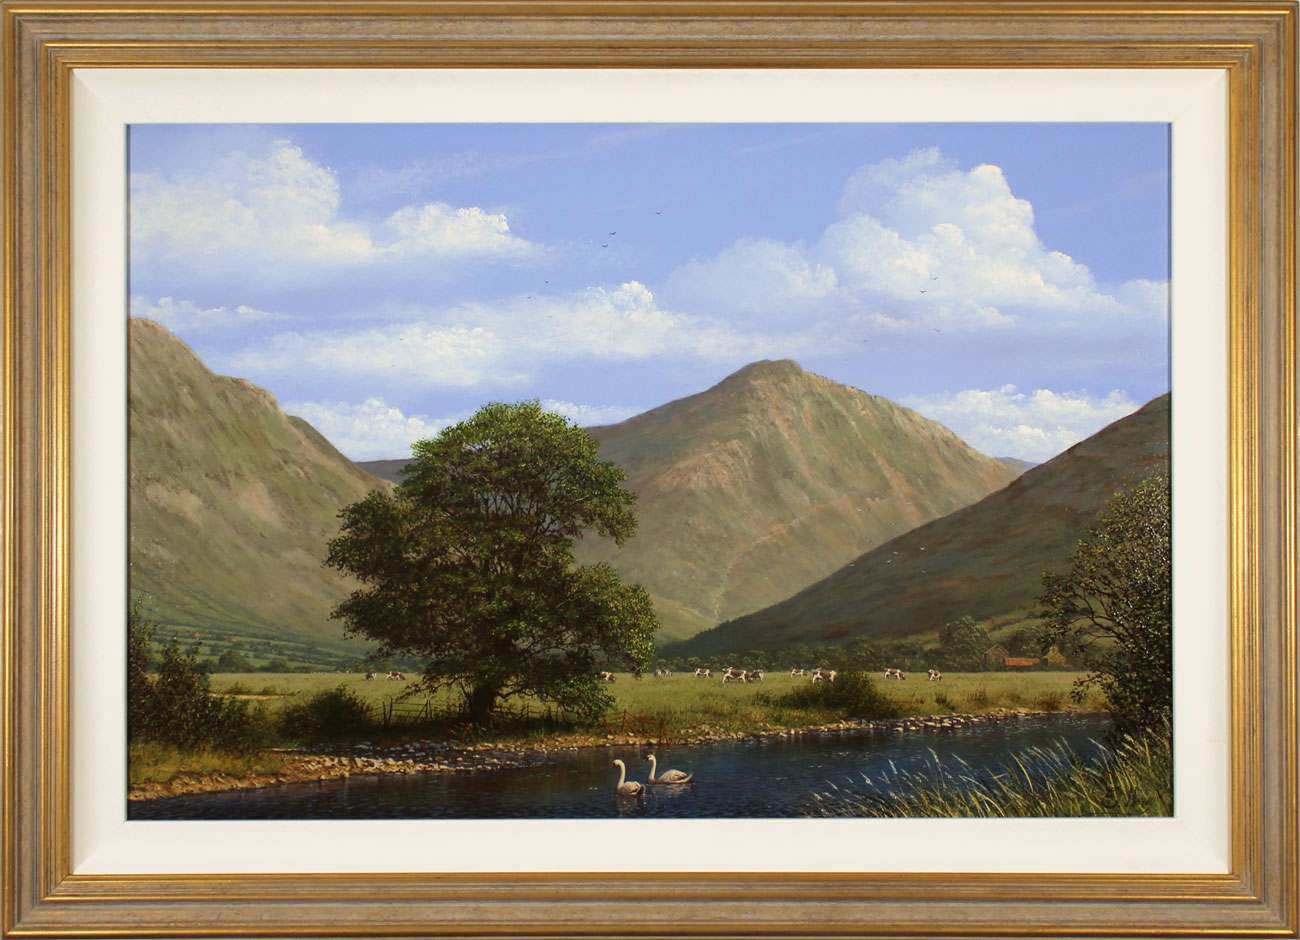 Edward Hersey, Original oil painting on panel, Great Gable, The Lake District Click to enlarge